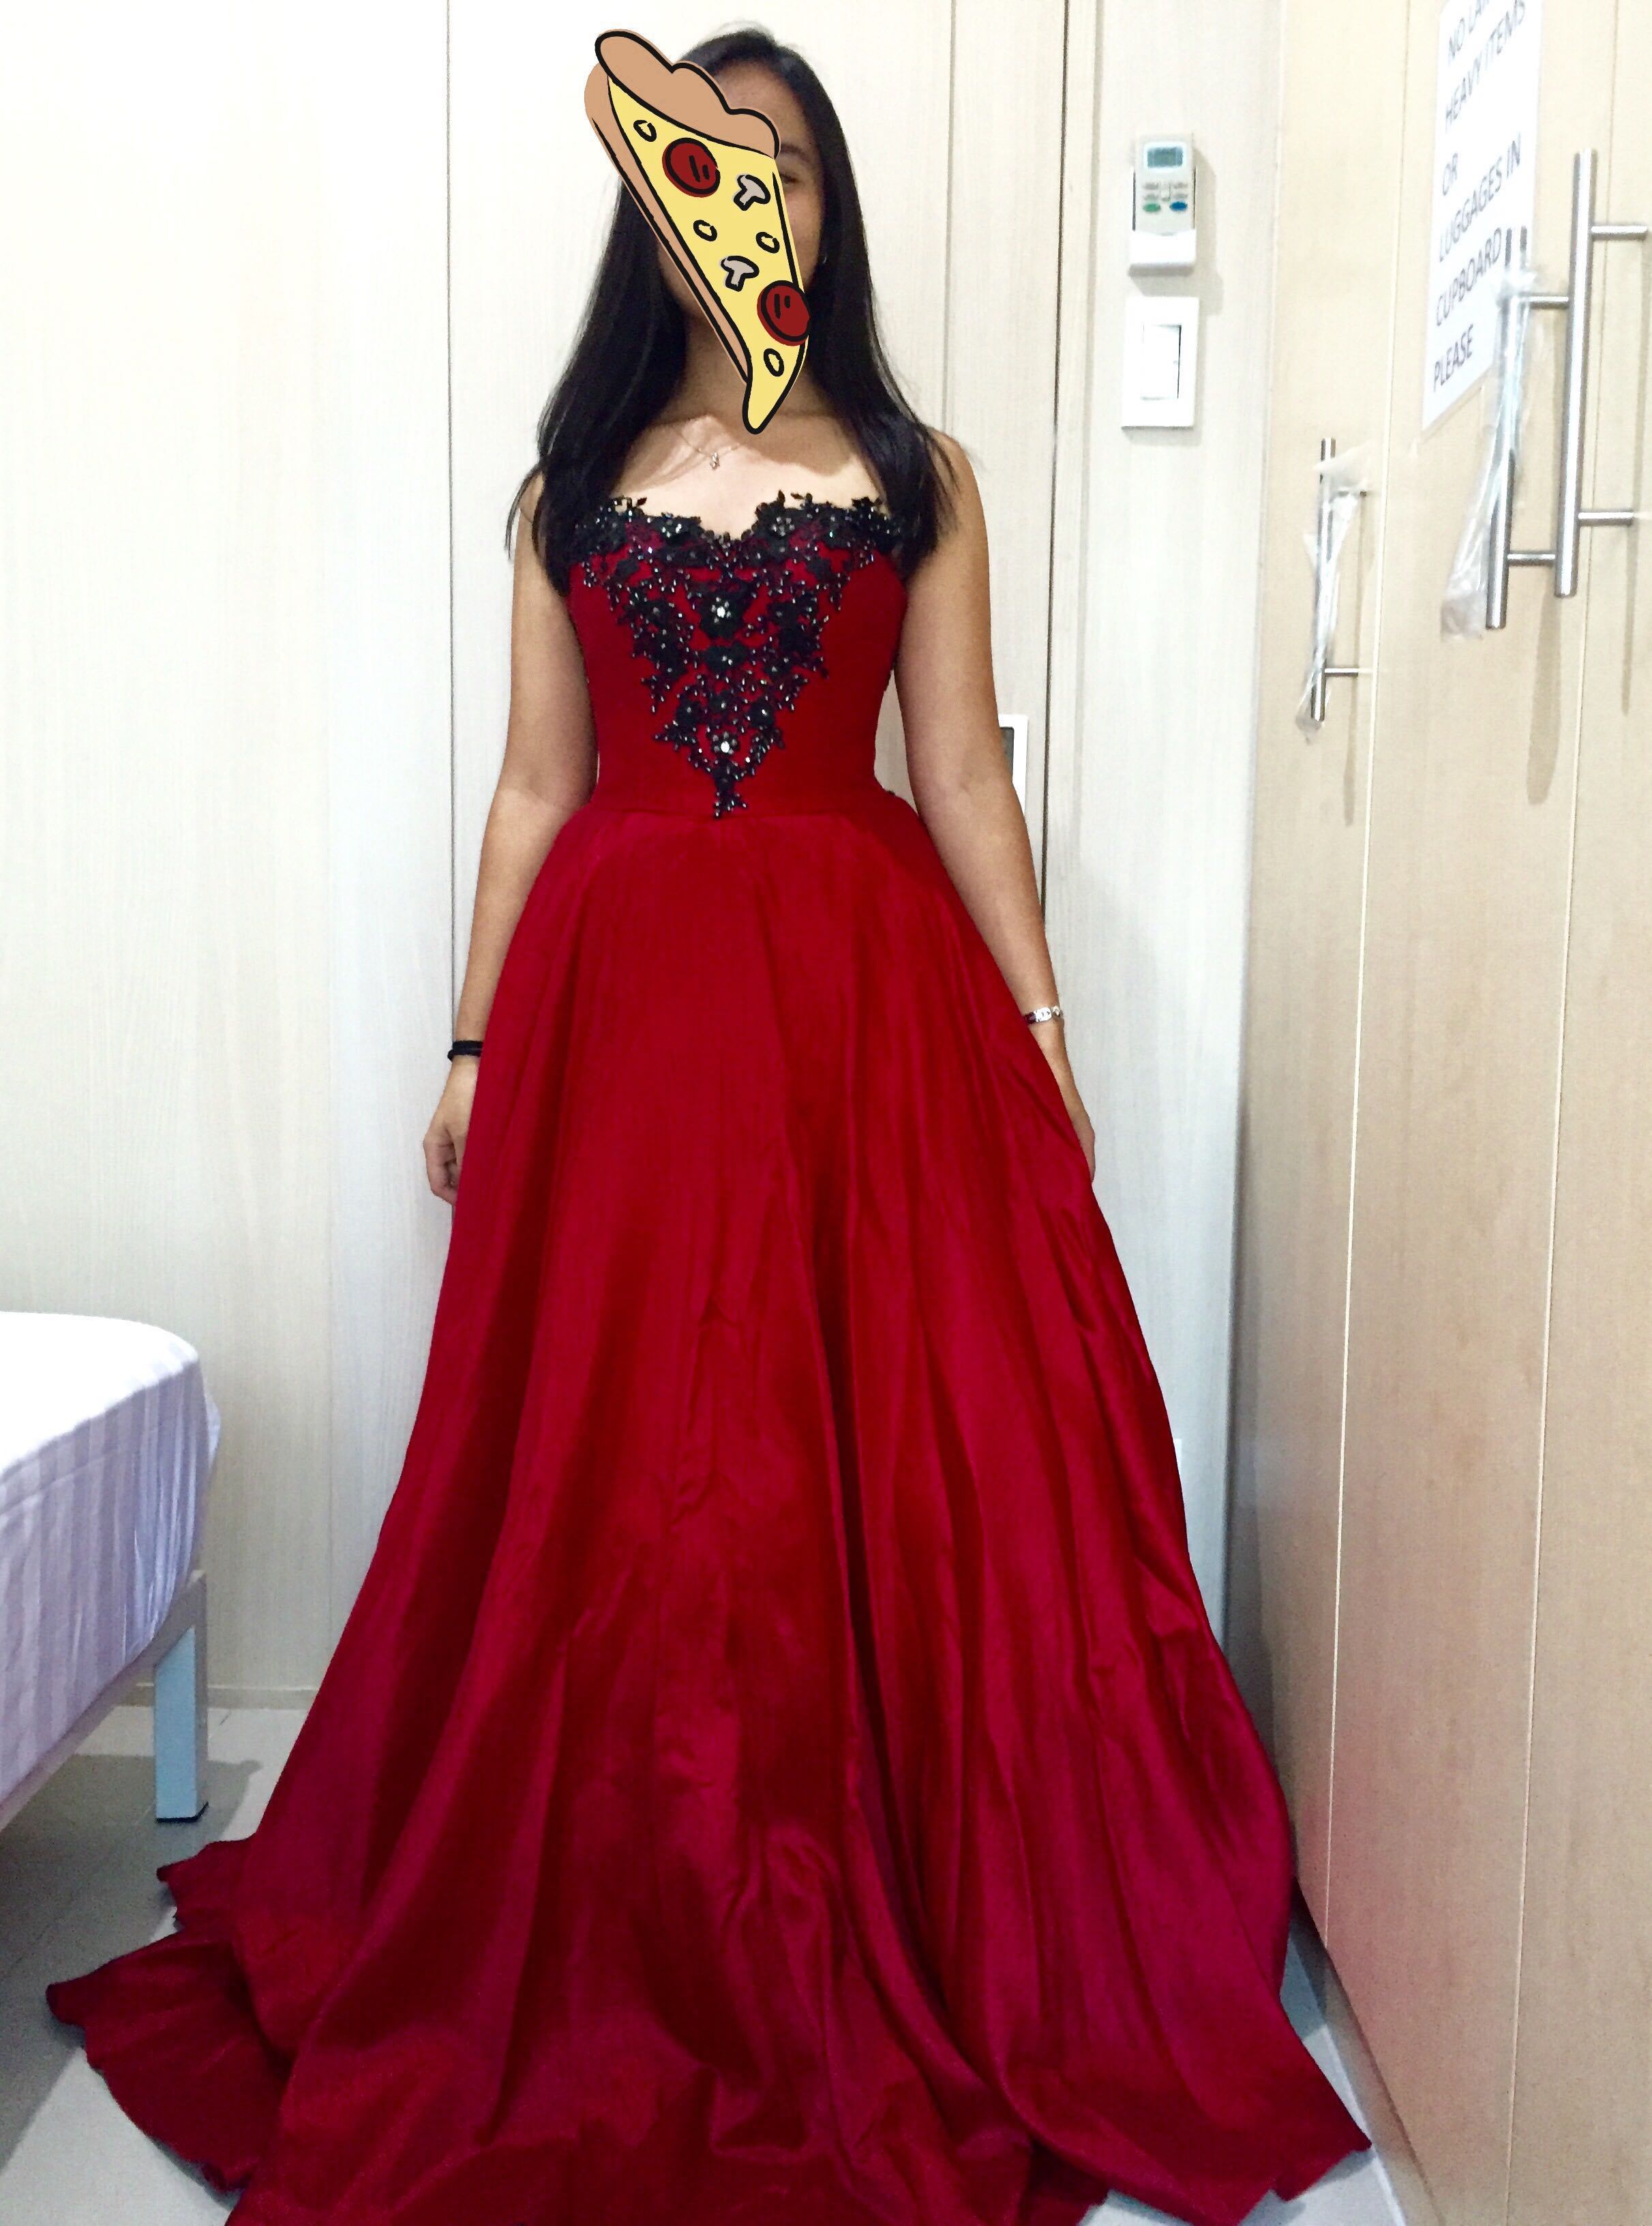 REPRICED: Red & Black Ball Gown for Prom/Debut/Parties!, Women\'s ...